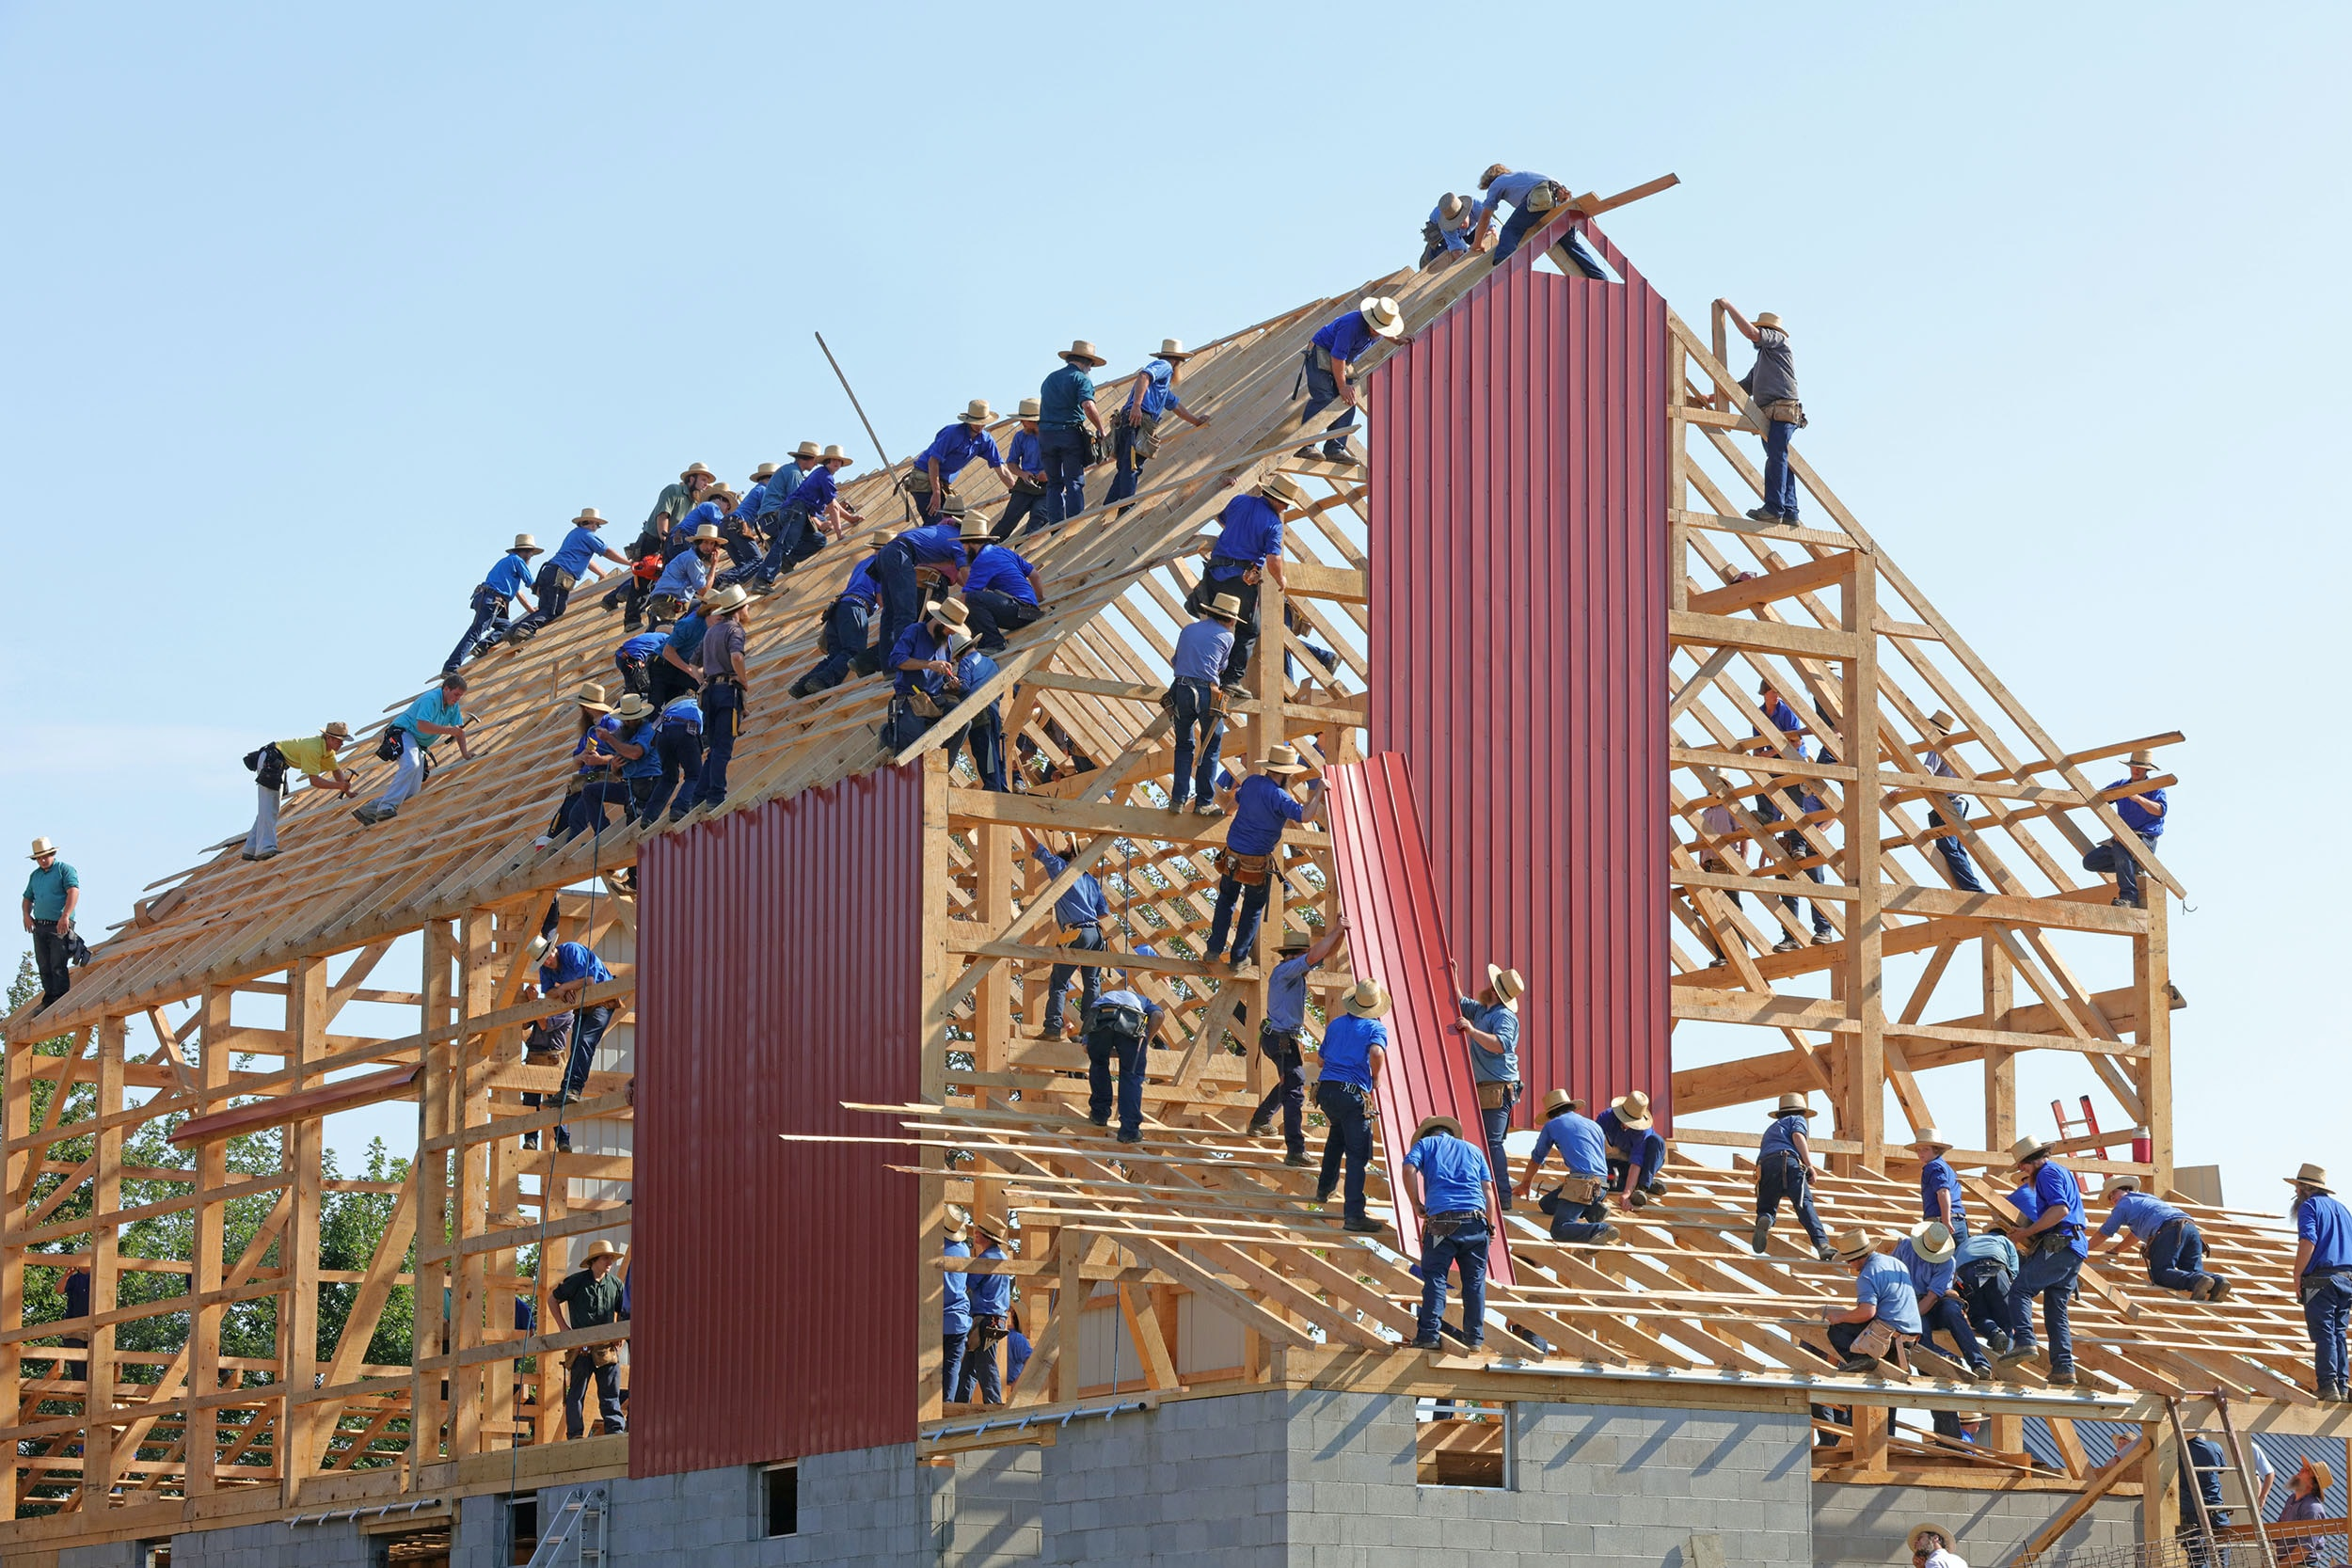 people building structure during daytime